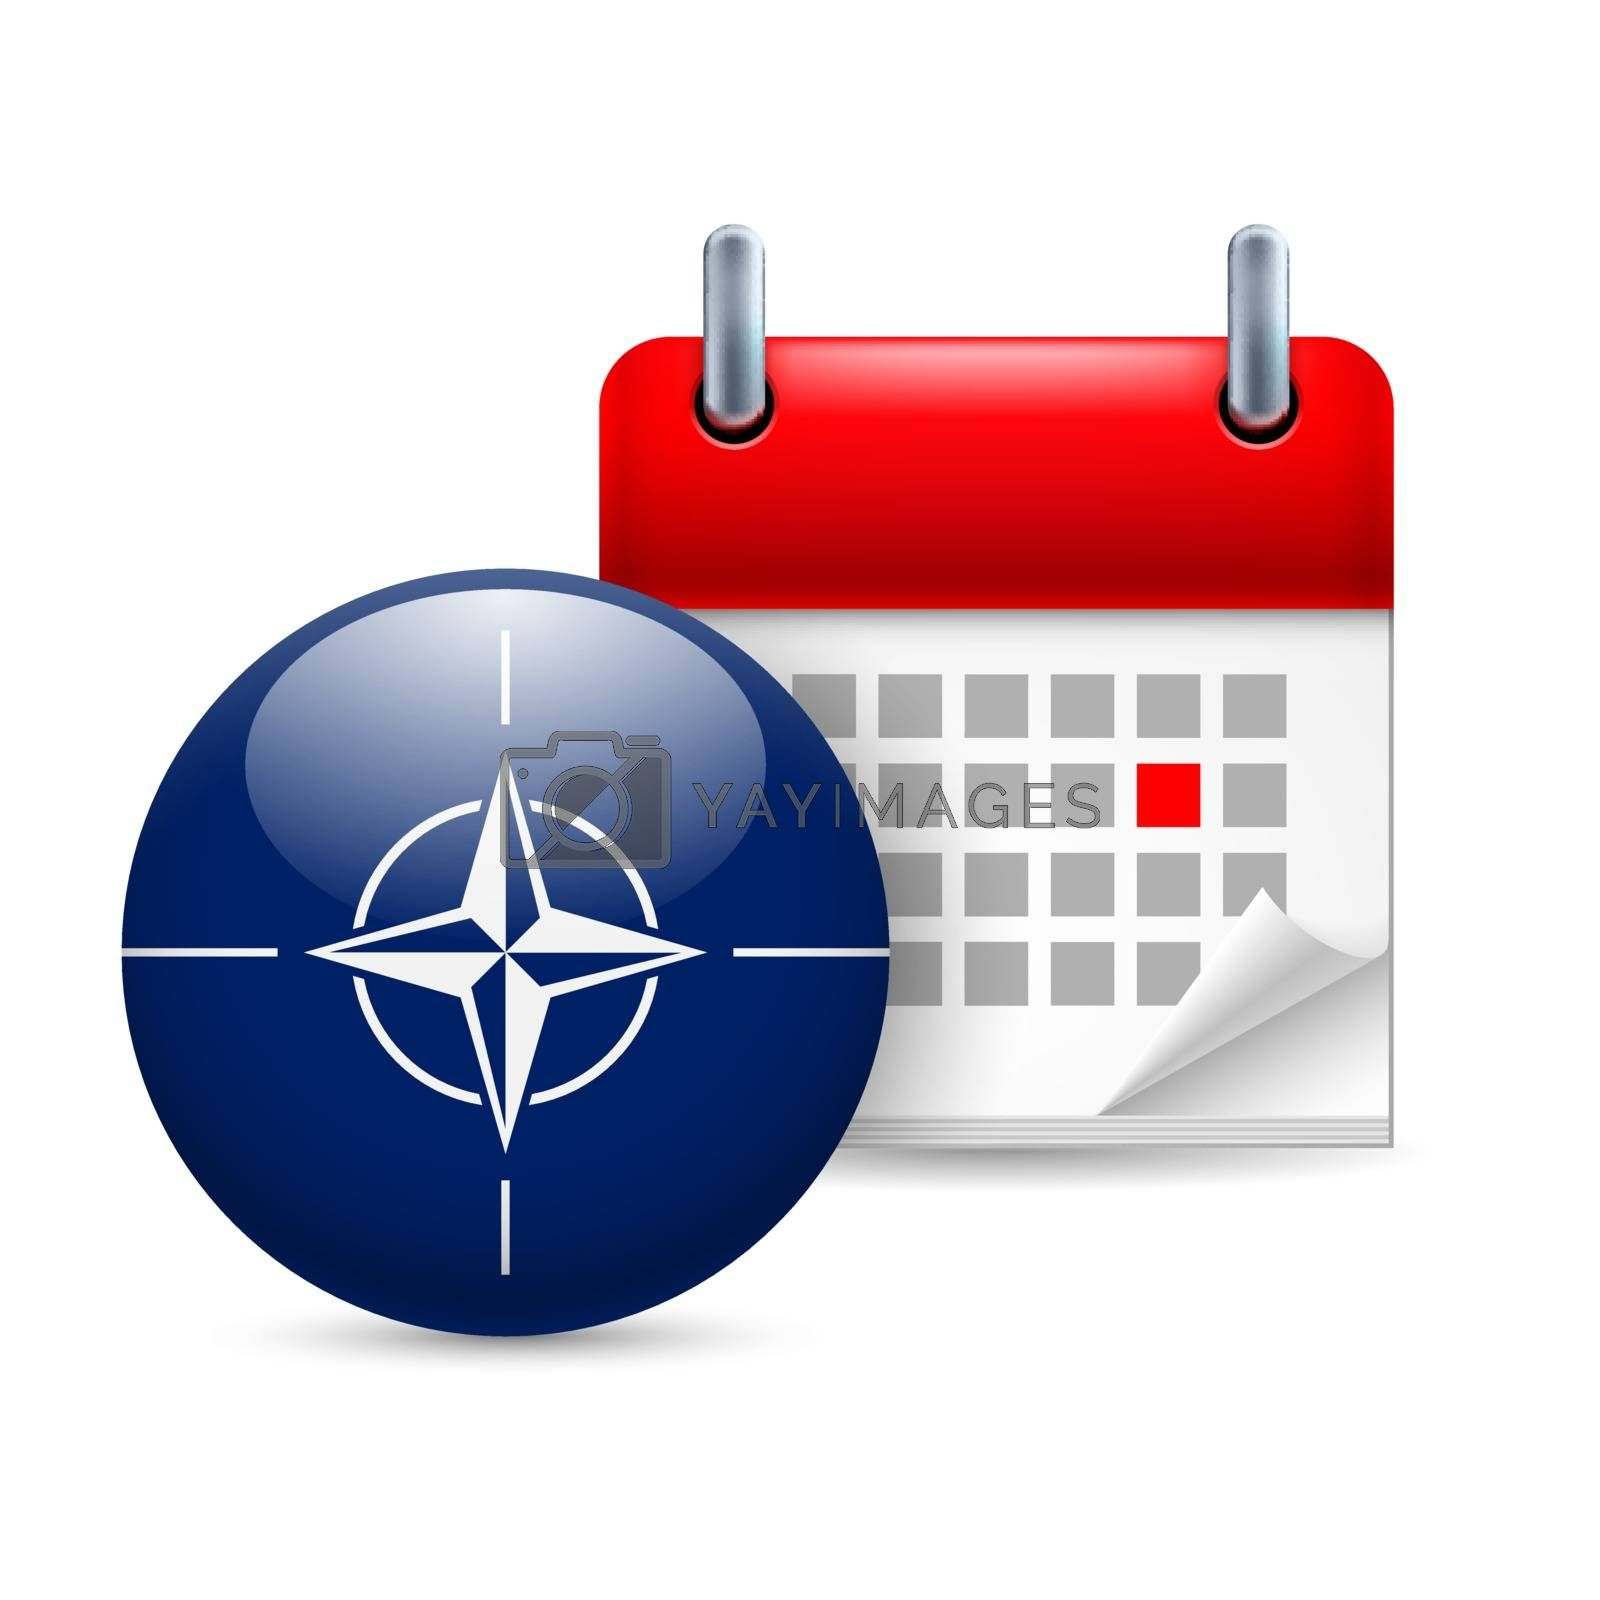 Royalty free image of Icon of NATO flag and calendar by dvarg